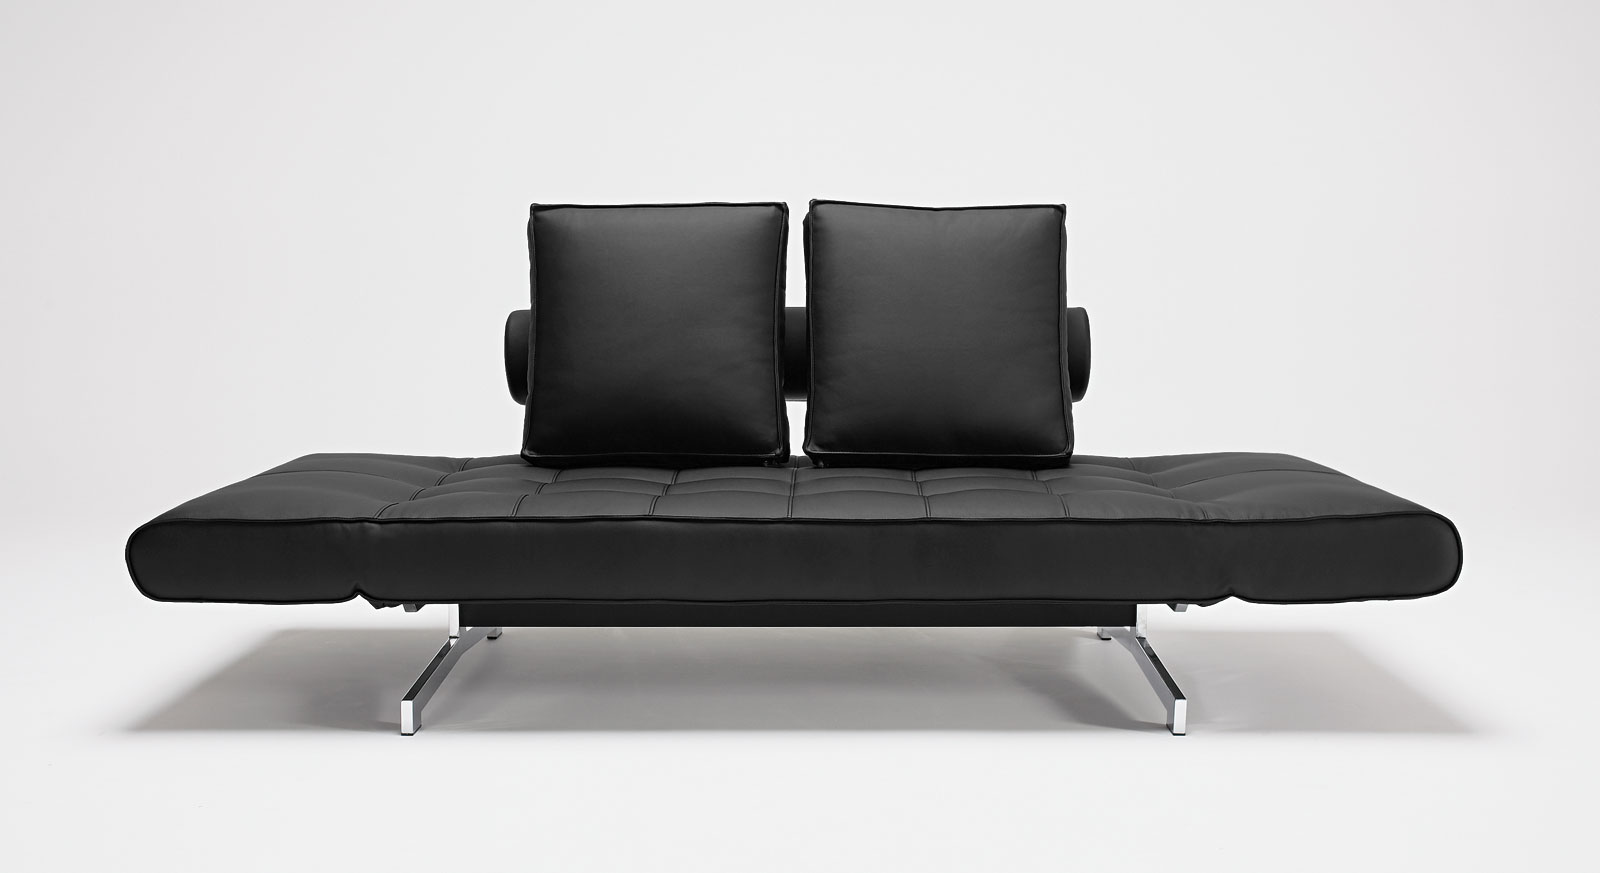 schlafsofa 2 m lang sofa jensen n with schlafsofa 2 m lang awesome schlafsofa sofa sitzer. Black Bedroom Furniture Sets. Home Design Ideas